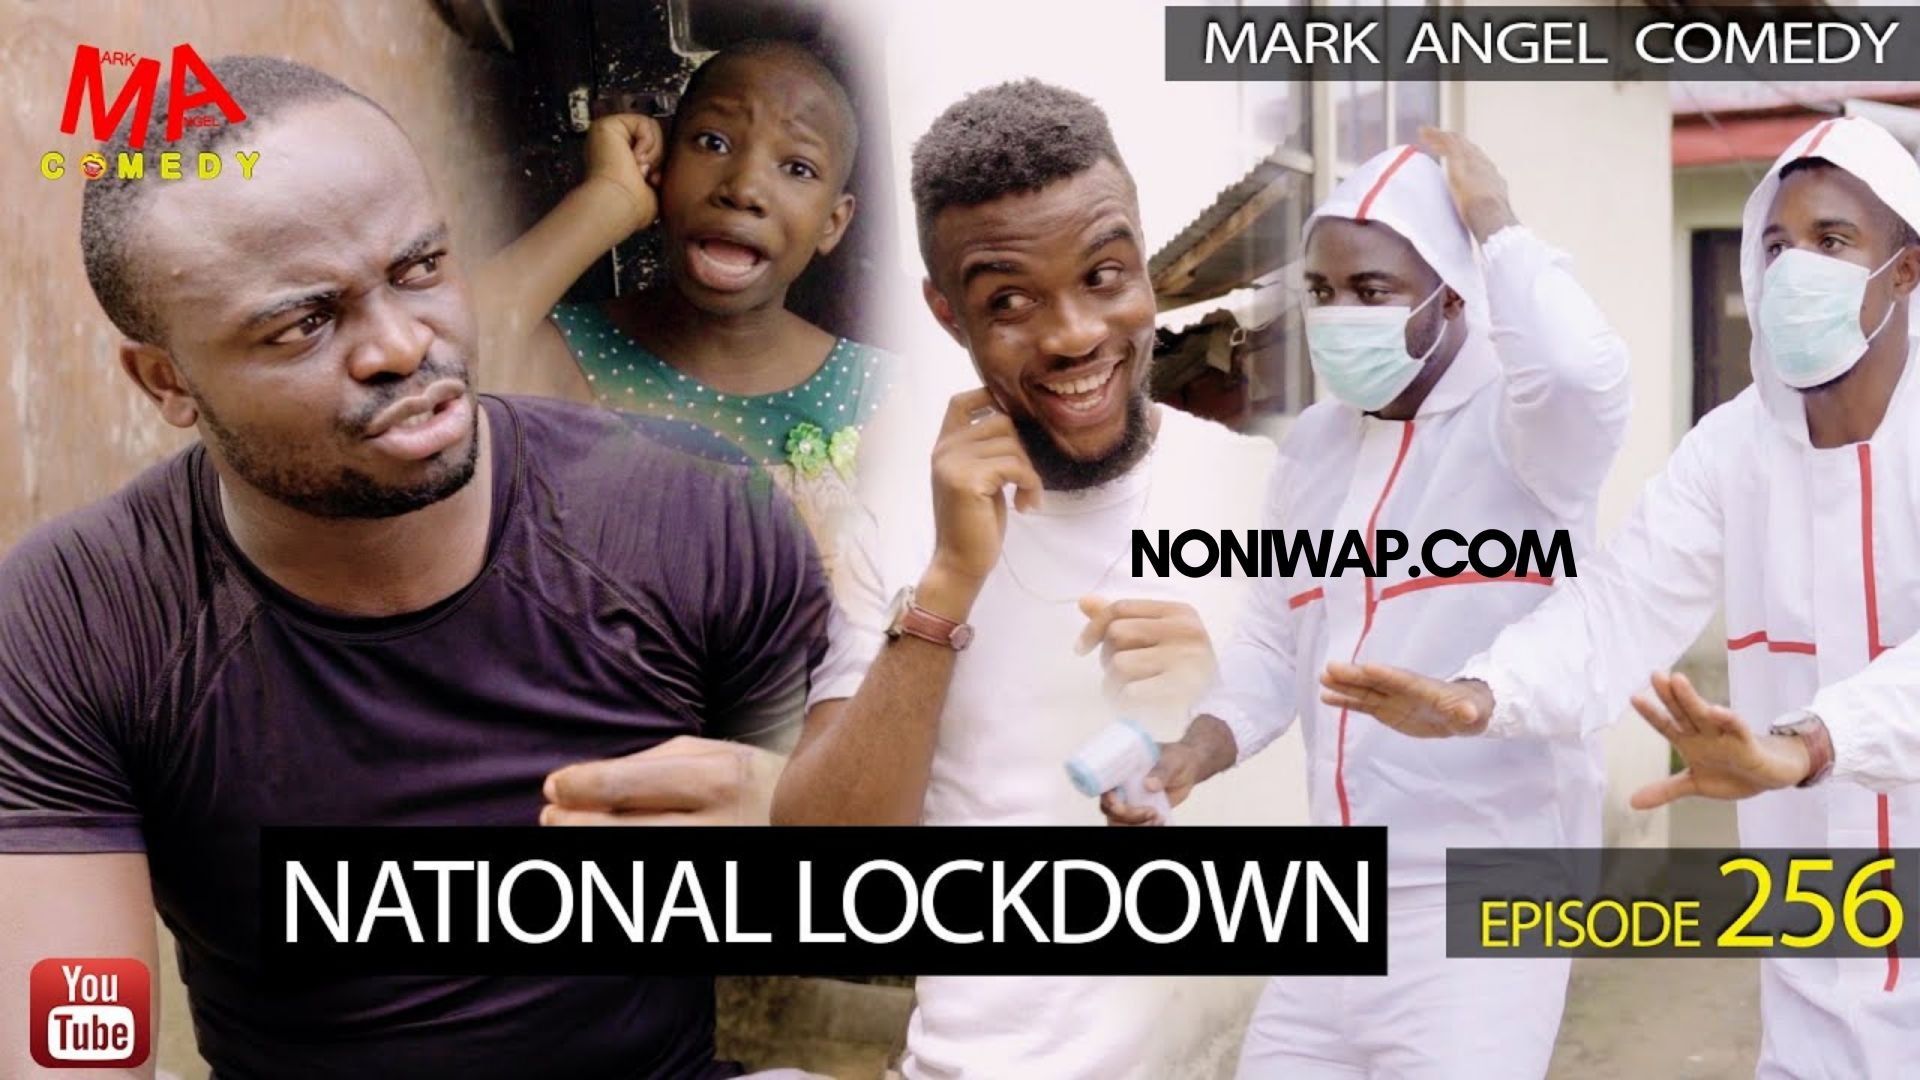 DOWNLOAD: NATIONAL LOCK DOWN (Mark Angel Comedy Episode 256)